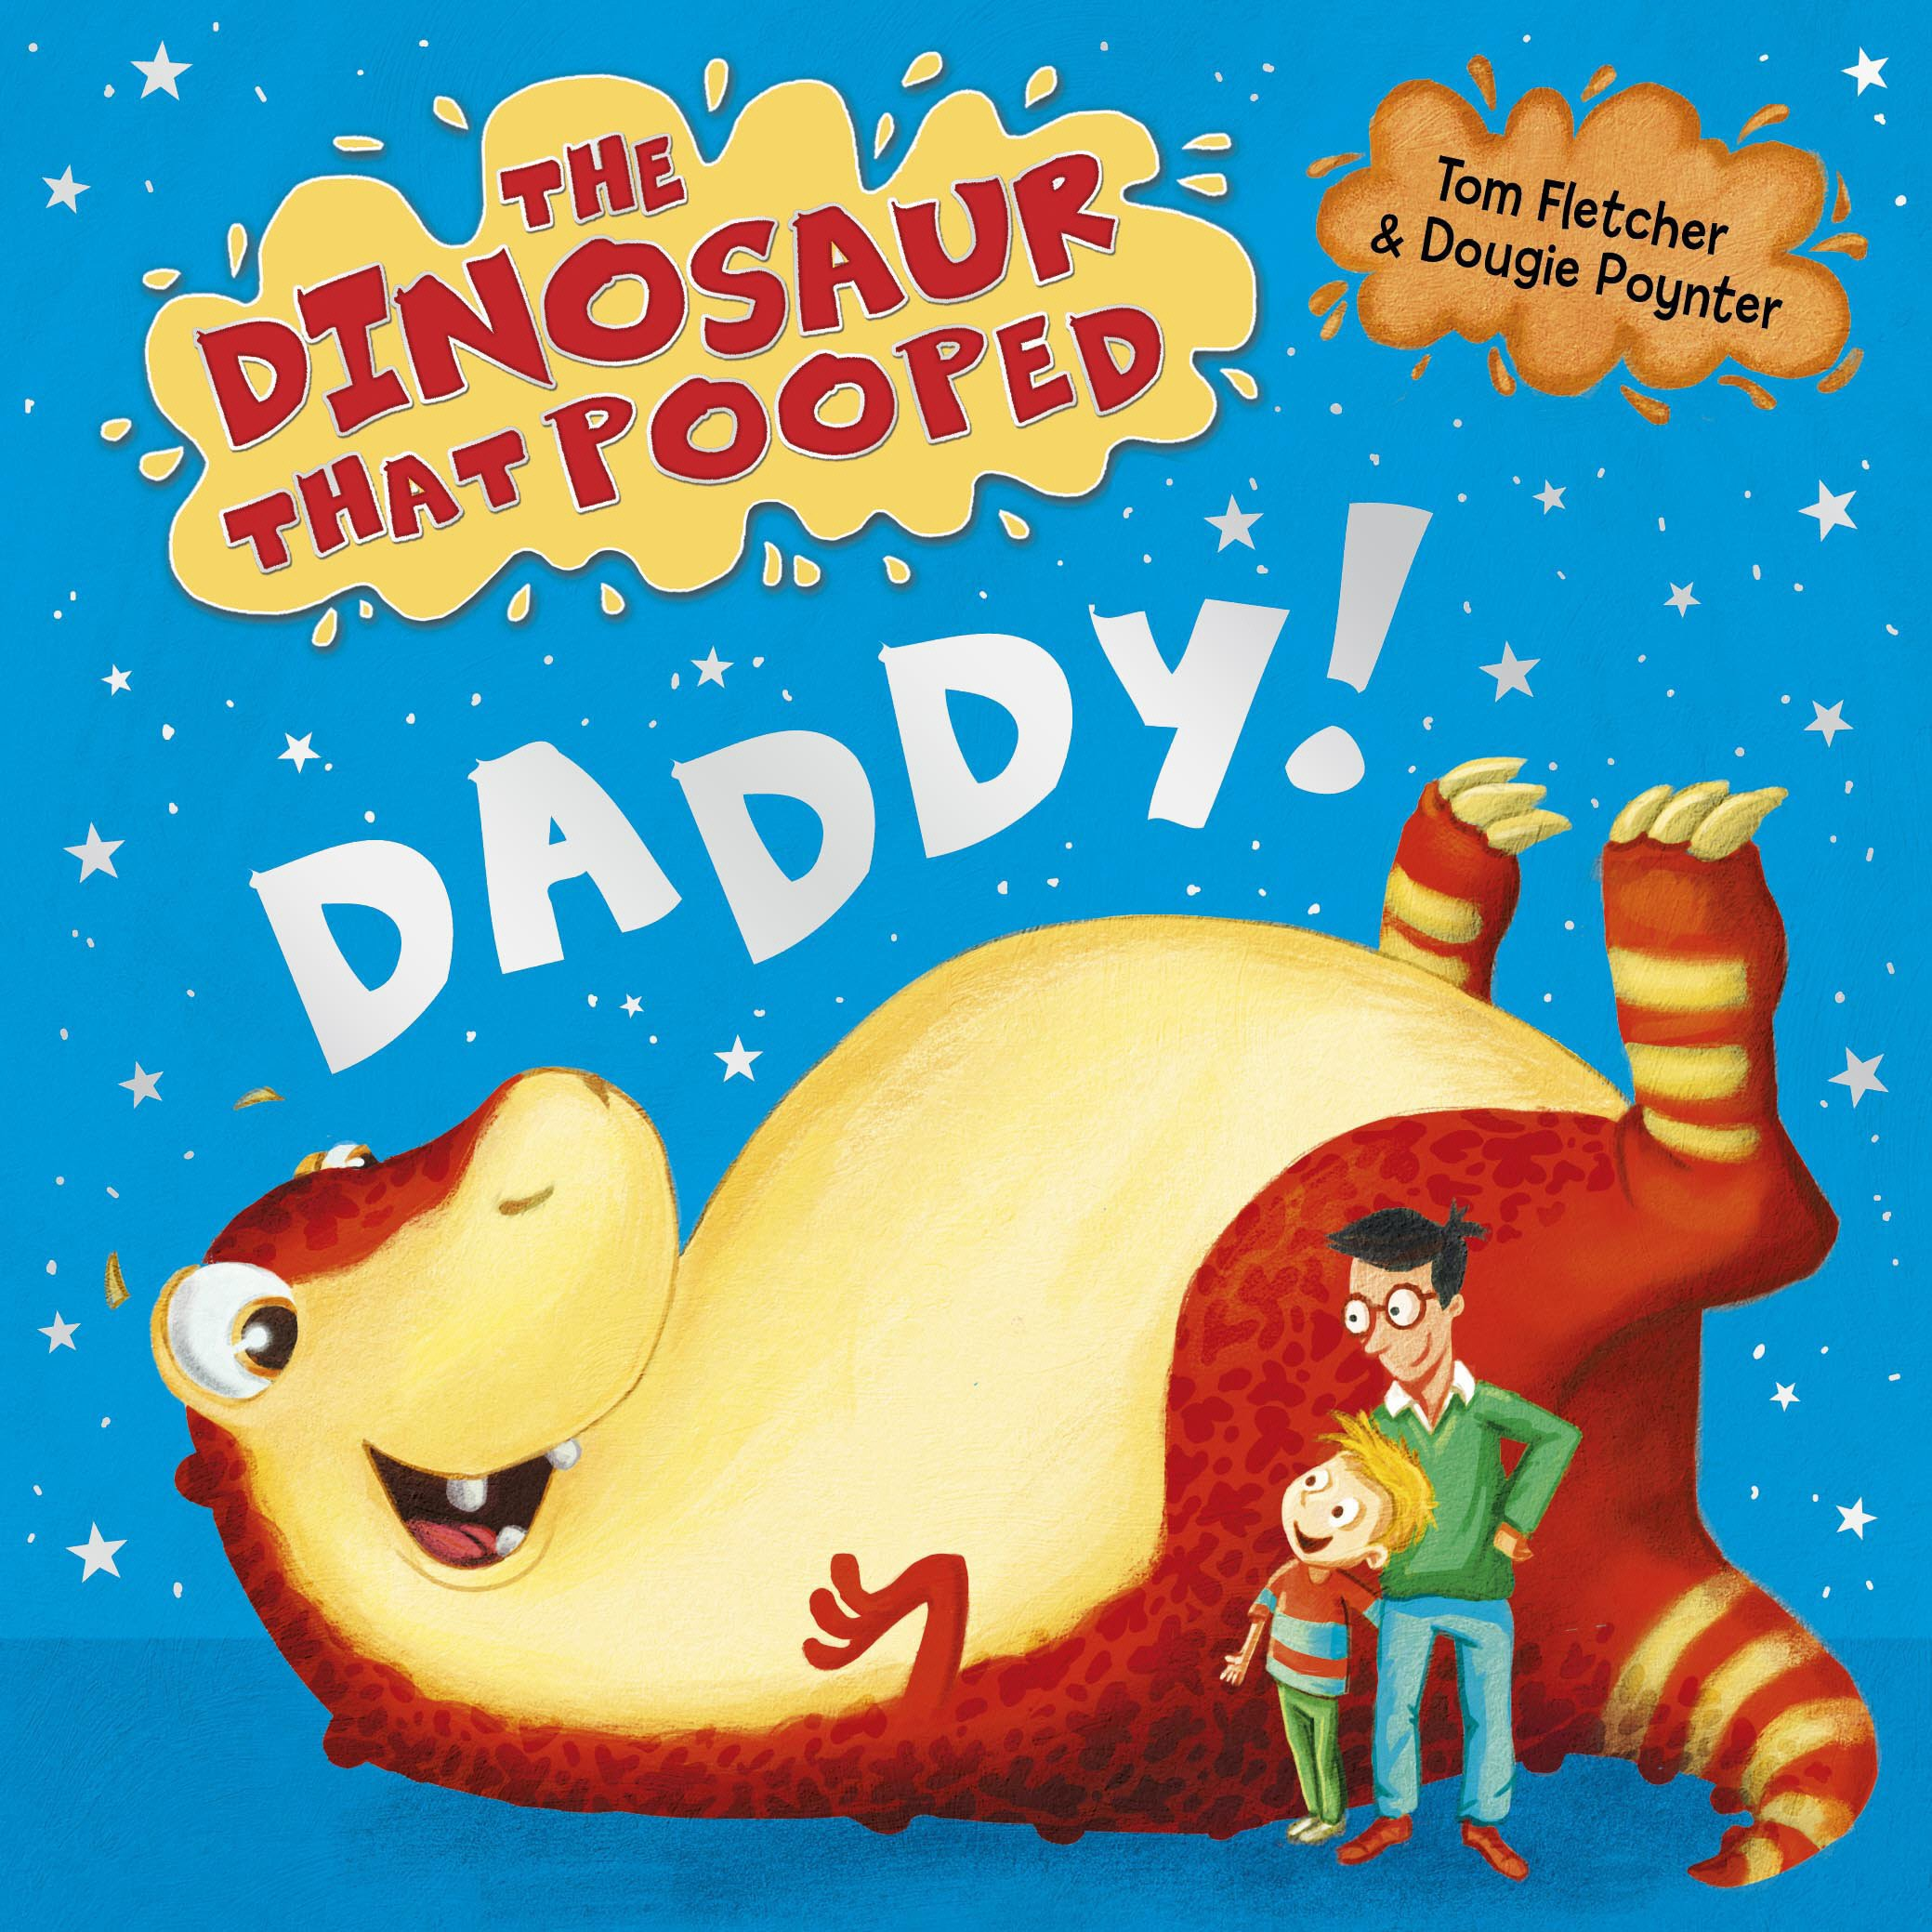 The Dinosaur That Pooped Daddy